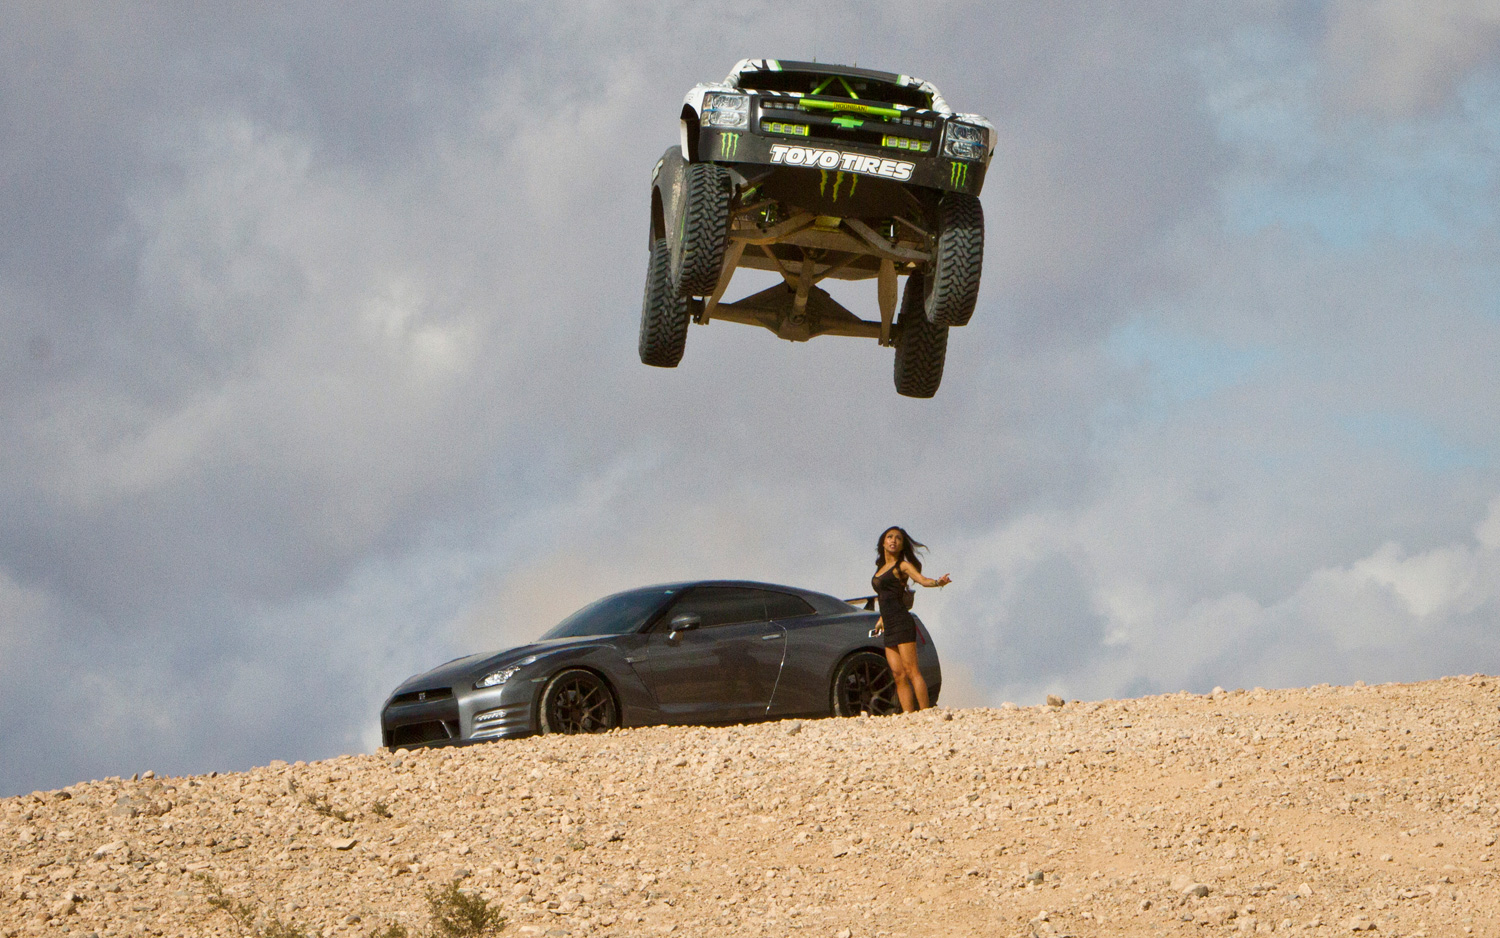 Monster Energy Girls Wallpaper Download Trophy Truck Wallpaper Gallery